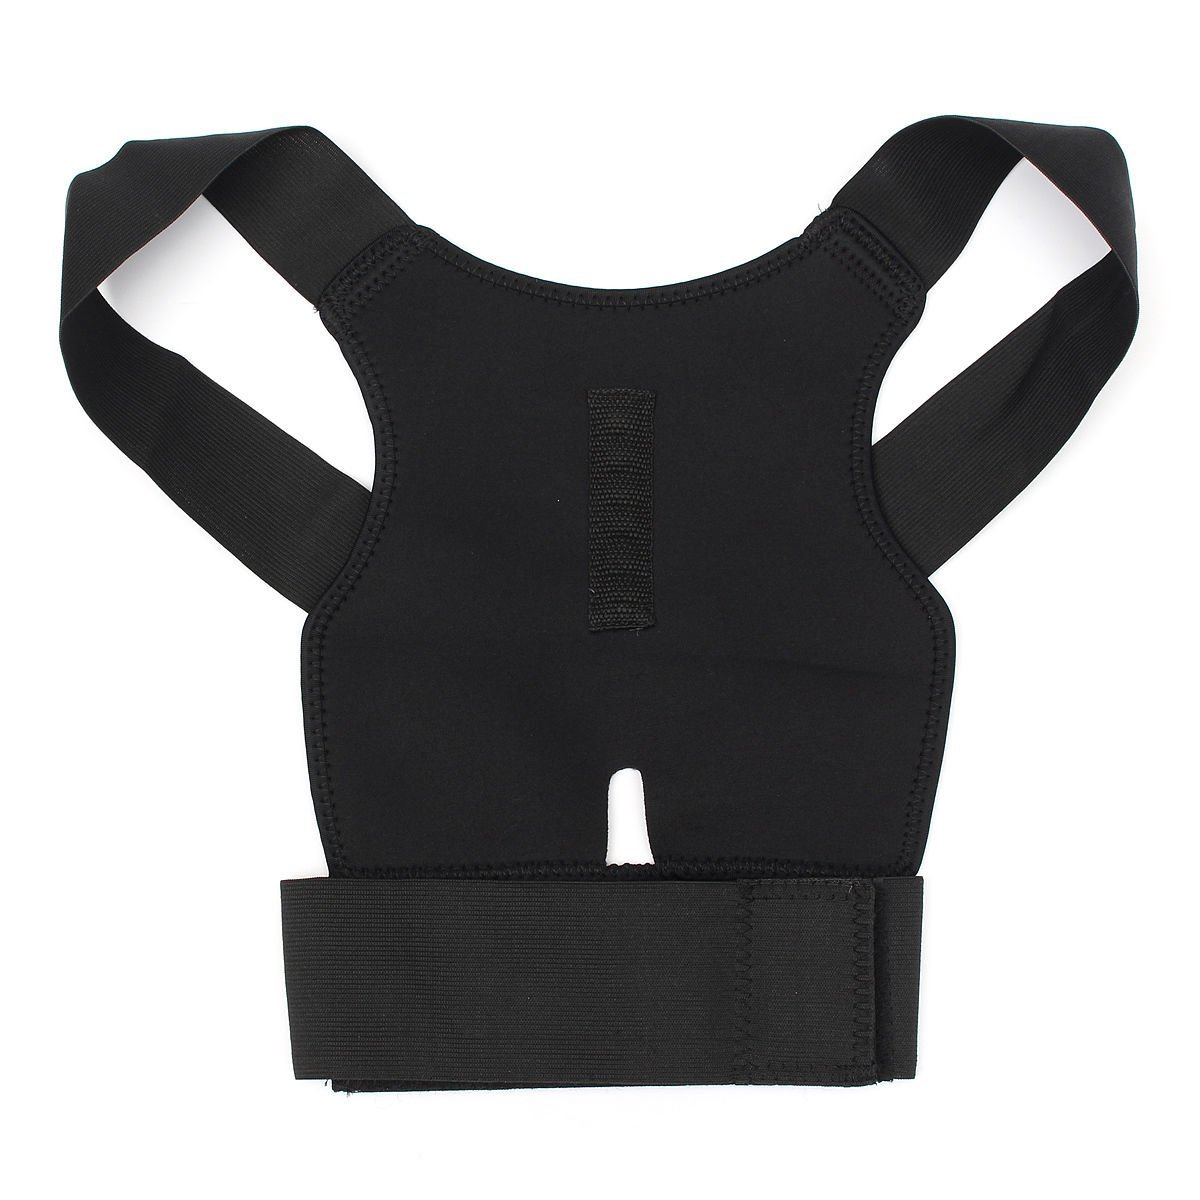 Aptoco Adjustable Posture Corrector